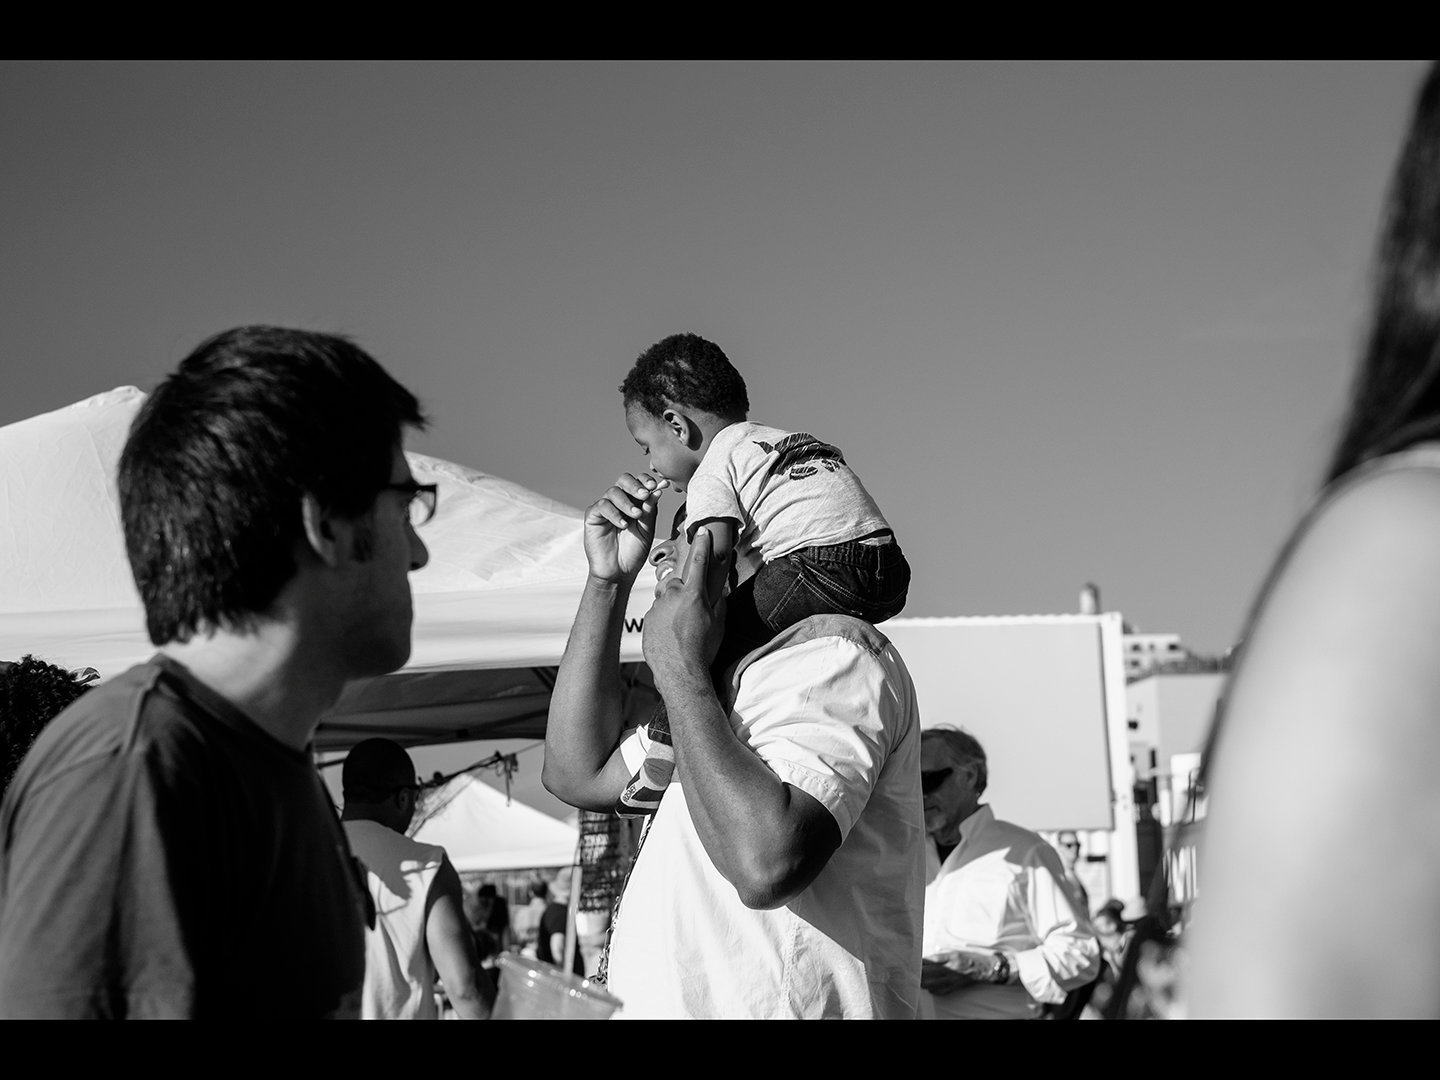 Father and Son Eat French Fries Photoville BW (Viewbook).jpg